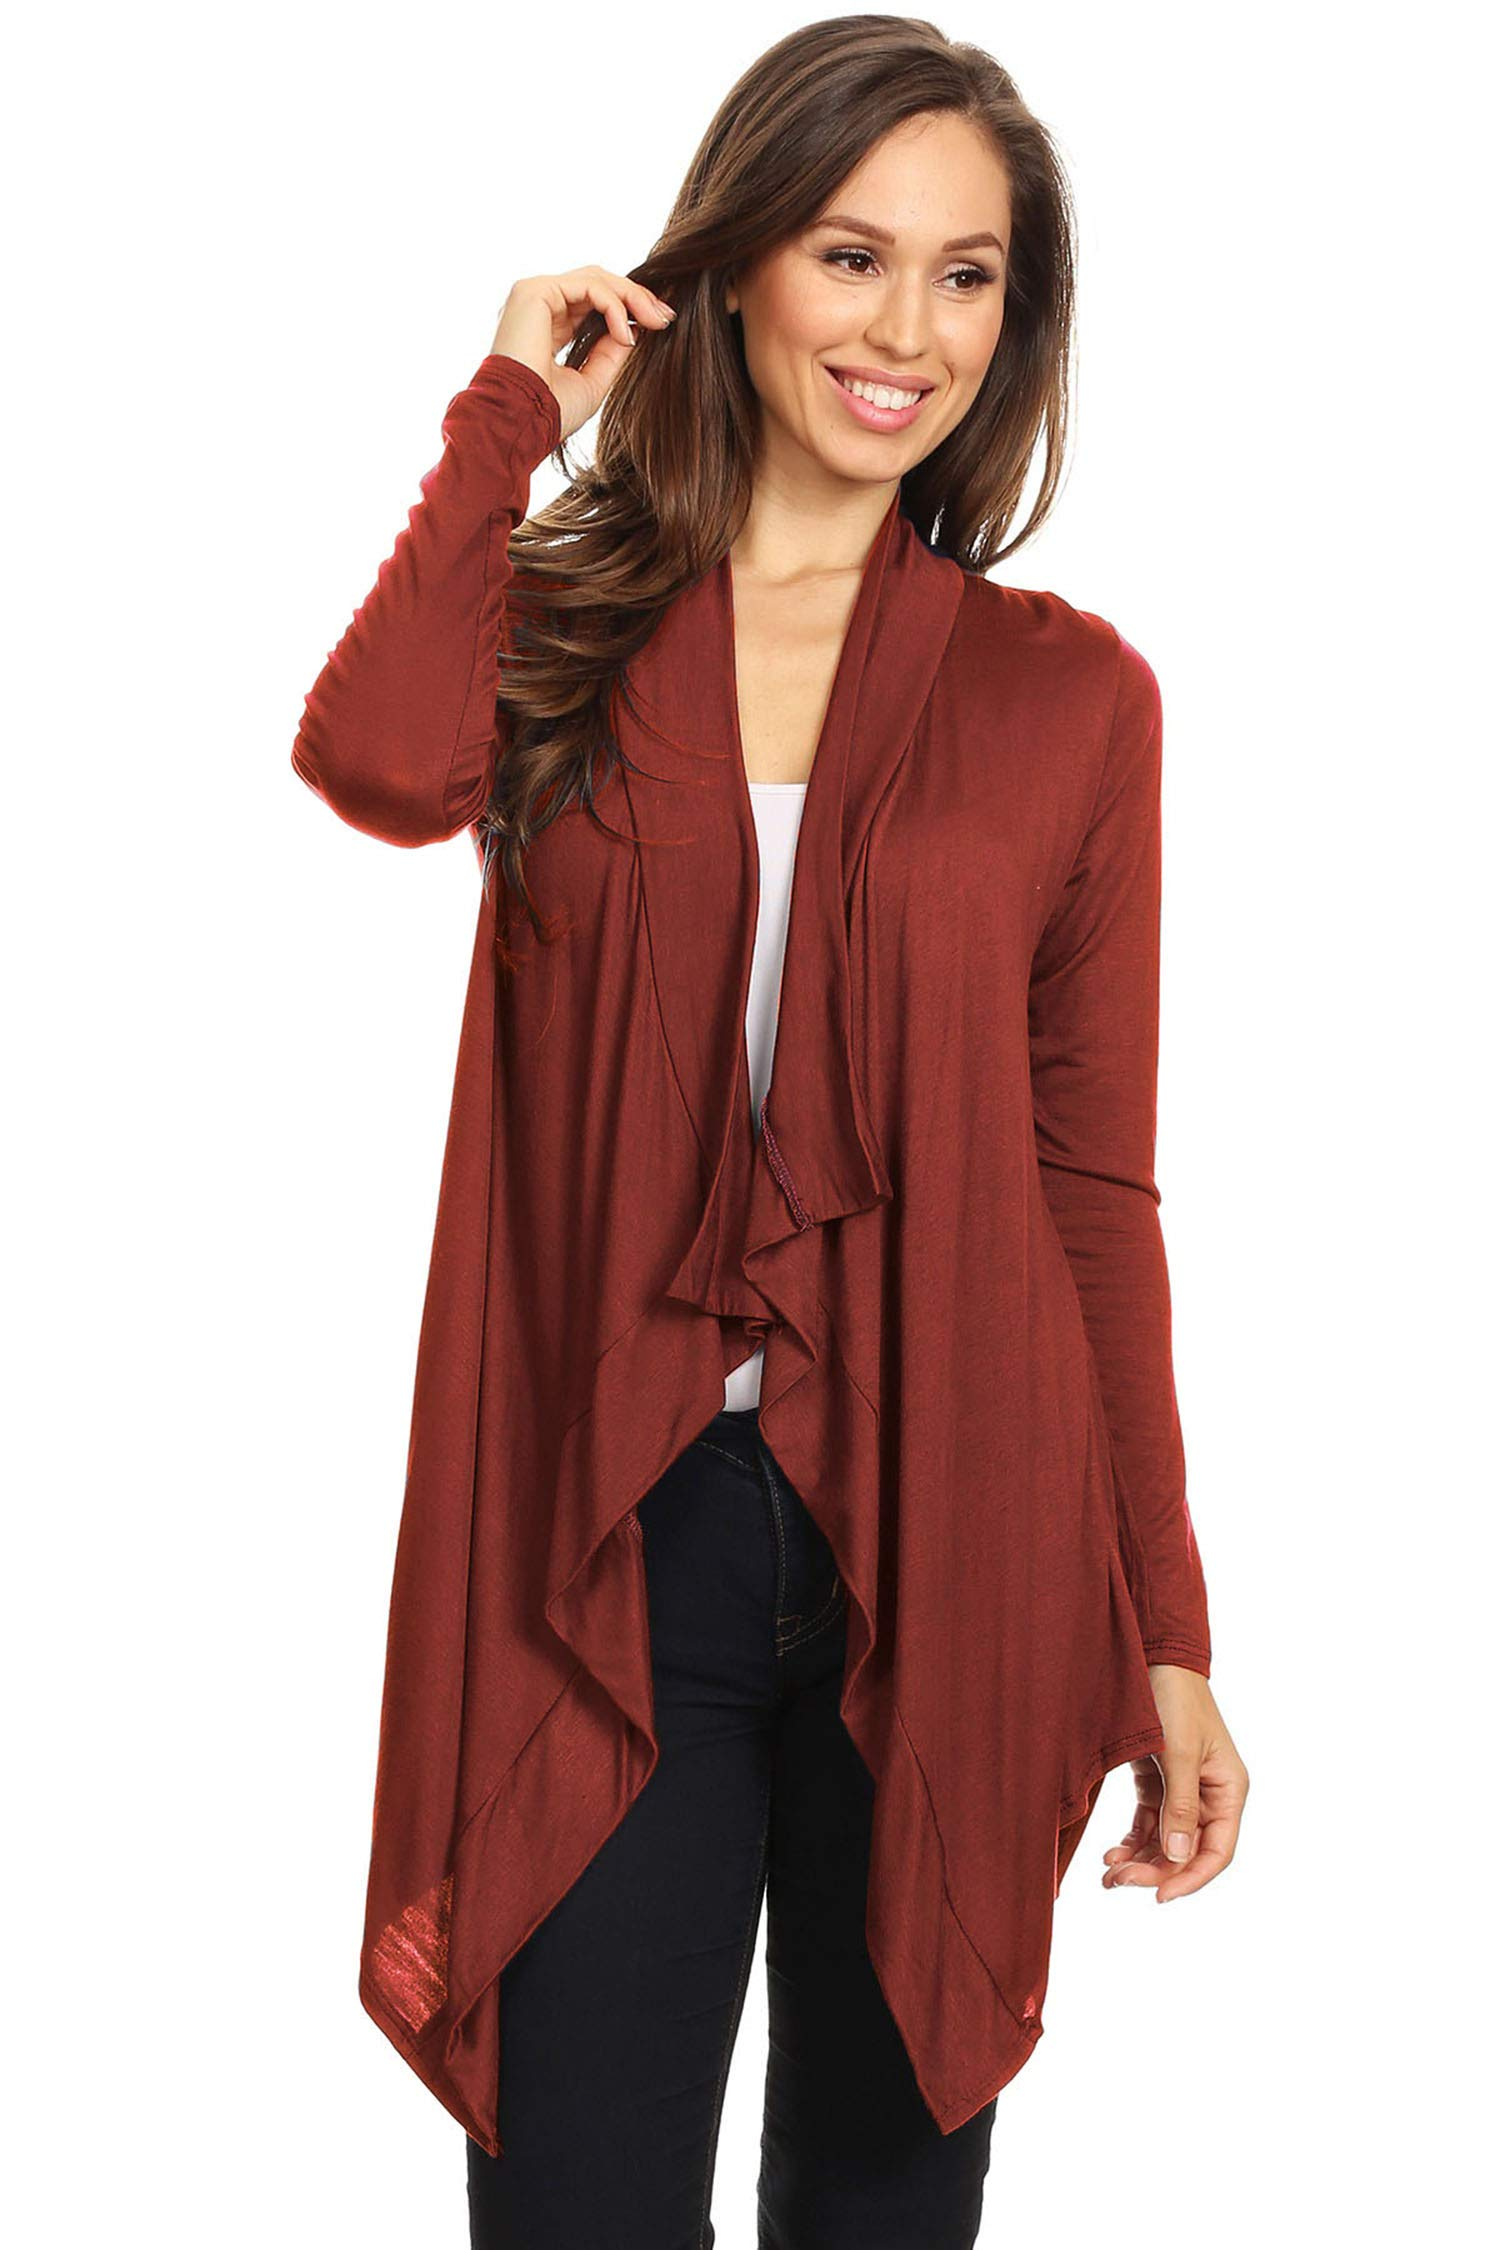 Casual Solid Knit Long Body Open Front Cardigan Sweater/Made in USA Rust M